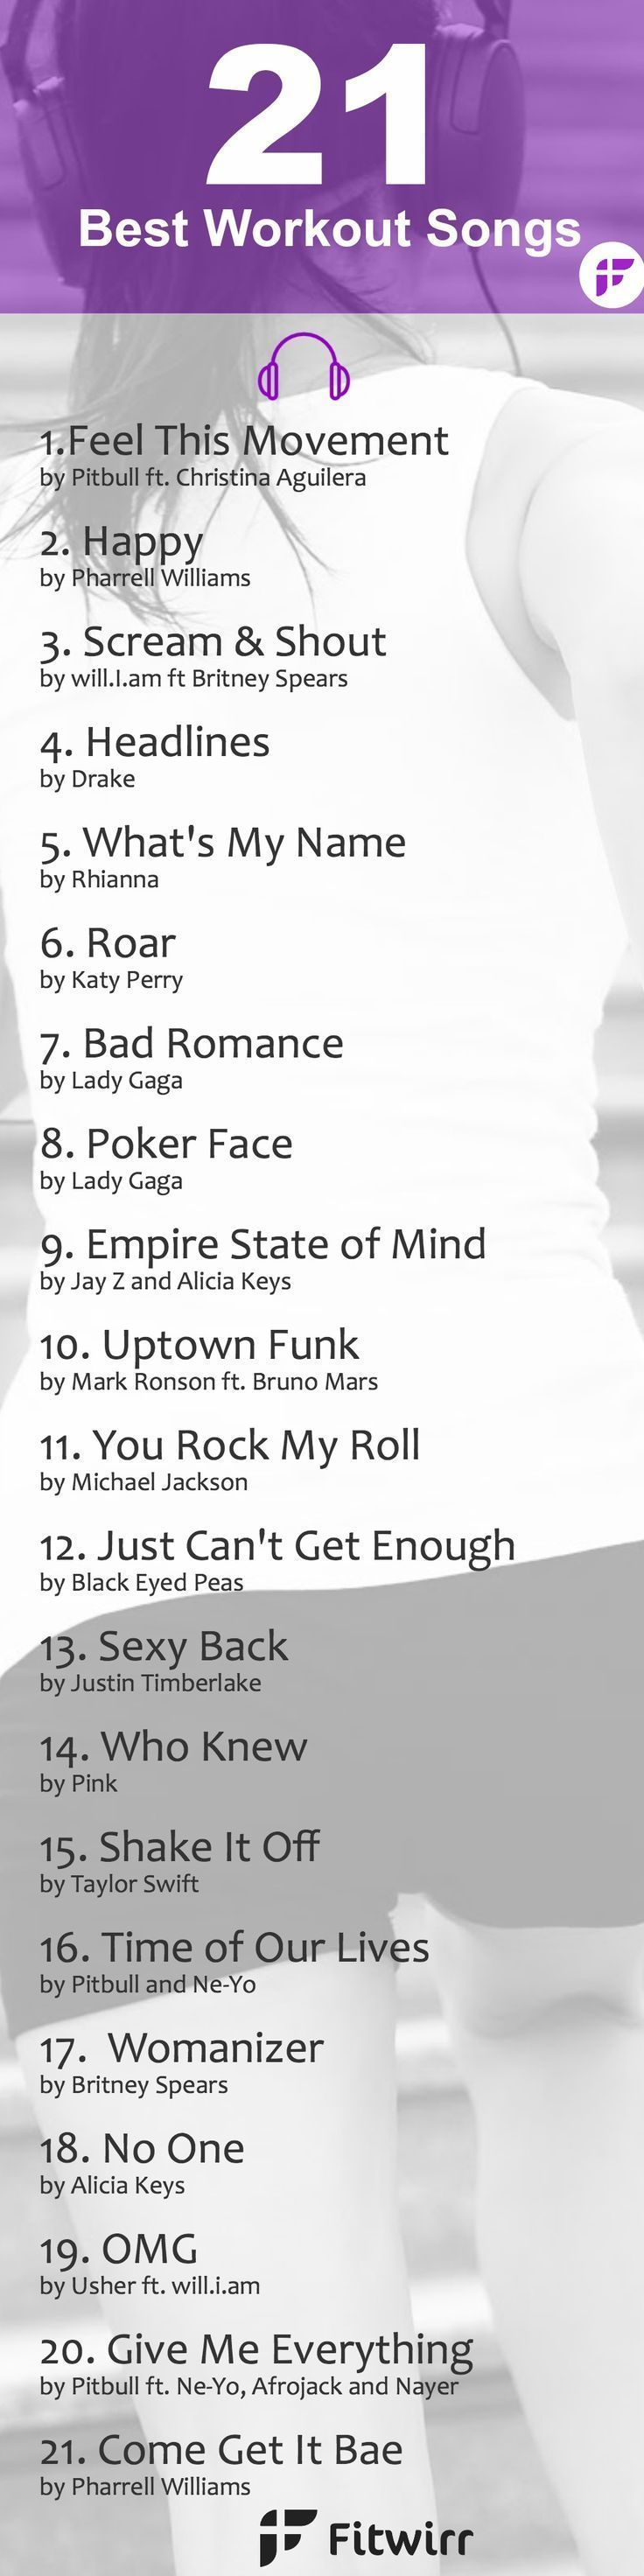 21 Good Workout Songs to Power Through Your Workout – Sport